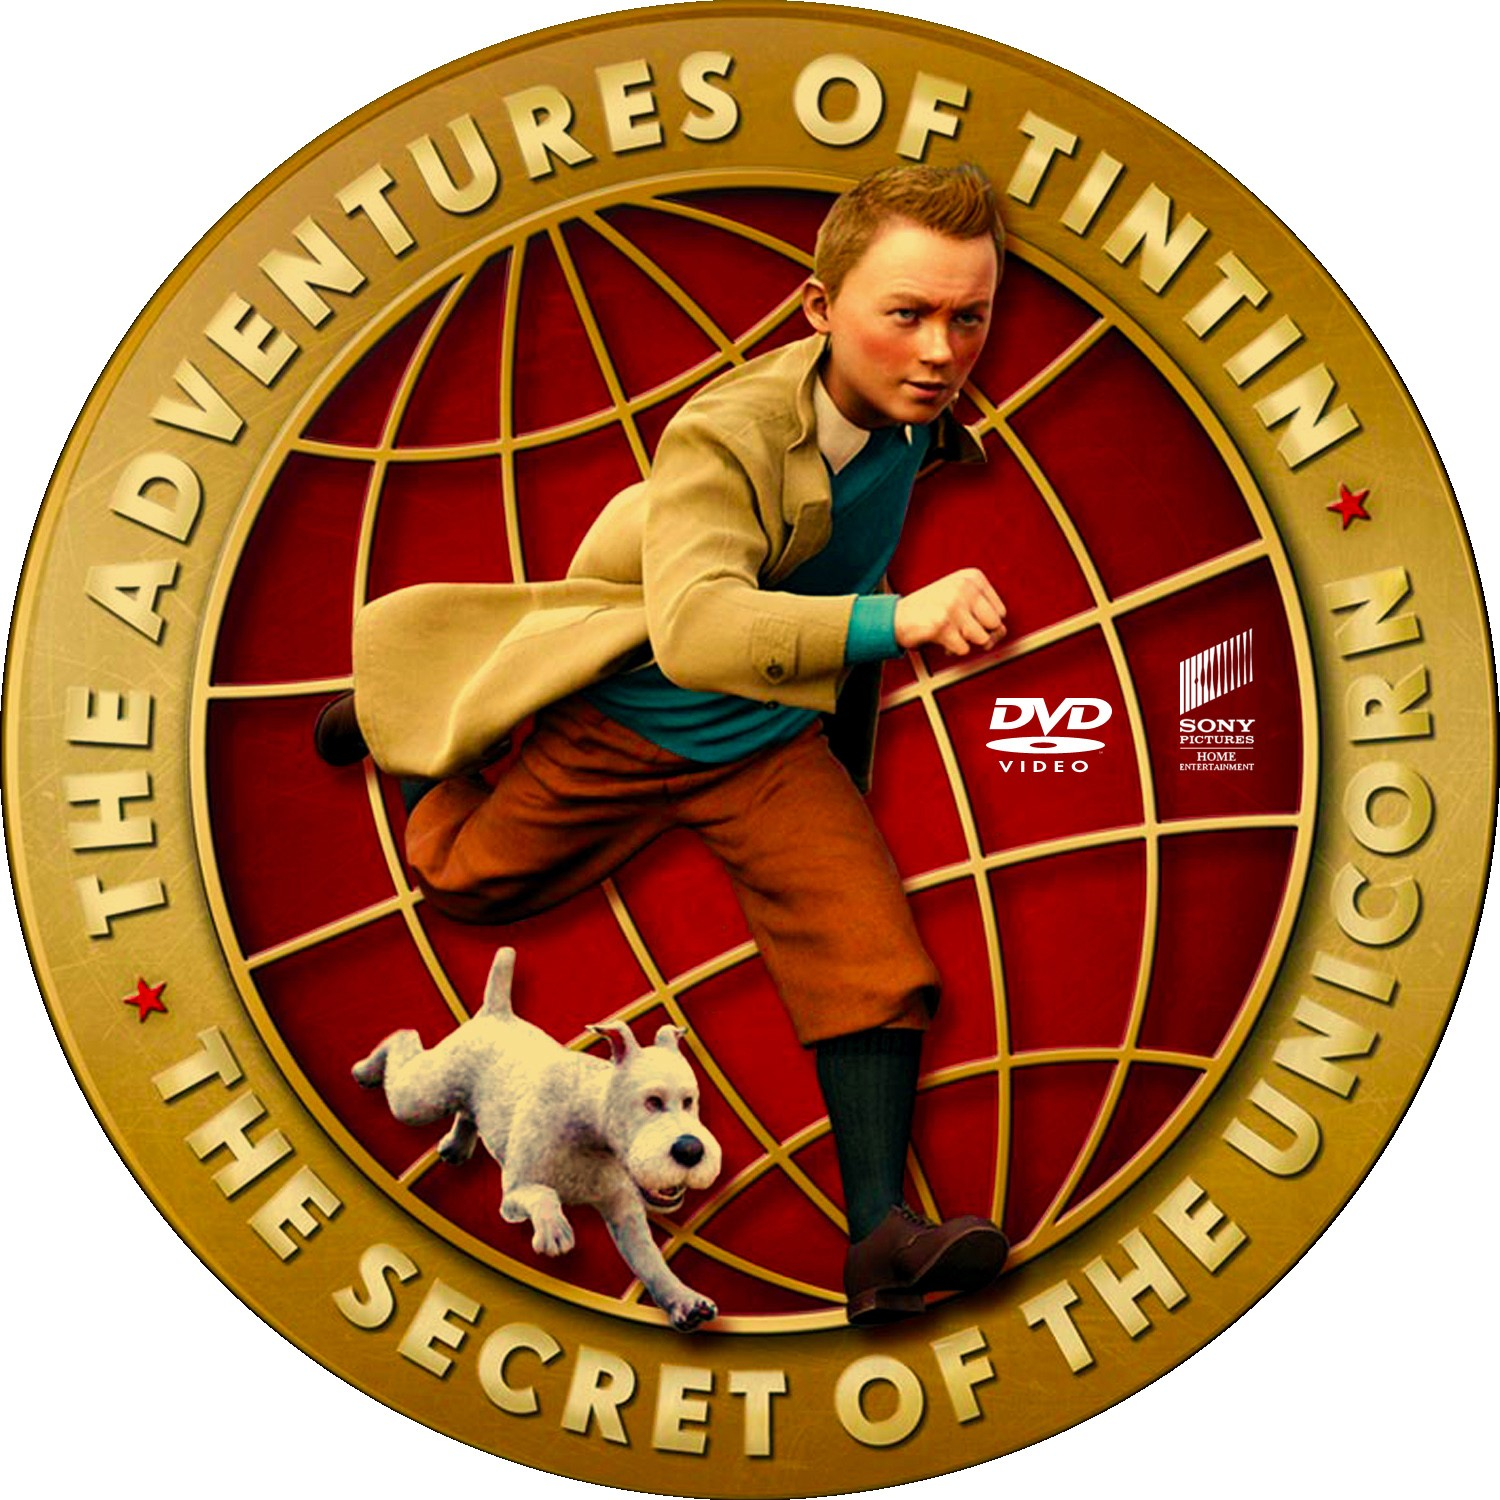 Download Filem The Adventures Of Tintin 2011 Bluray The Adventures Of Tintin 2011 high quality DVD Blueray Movie x